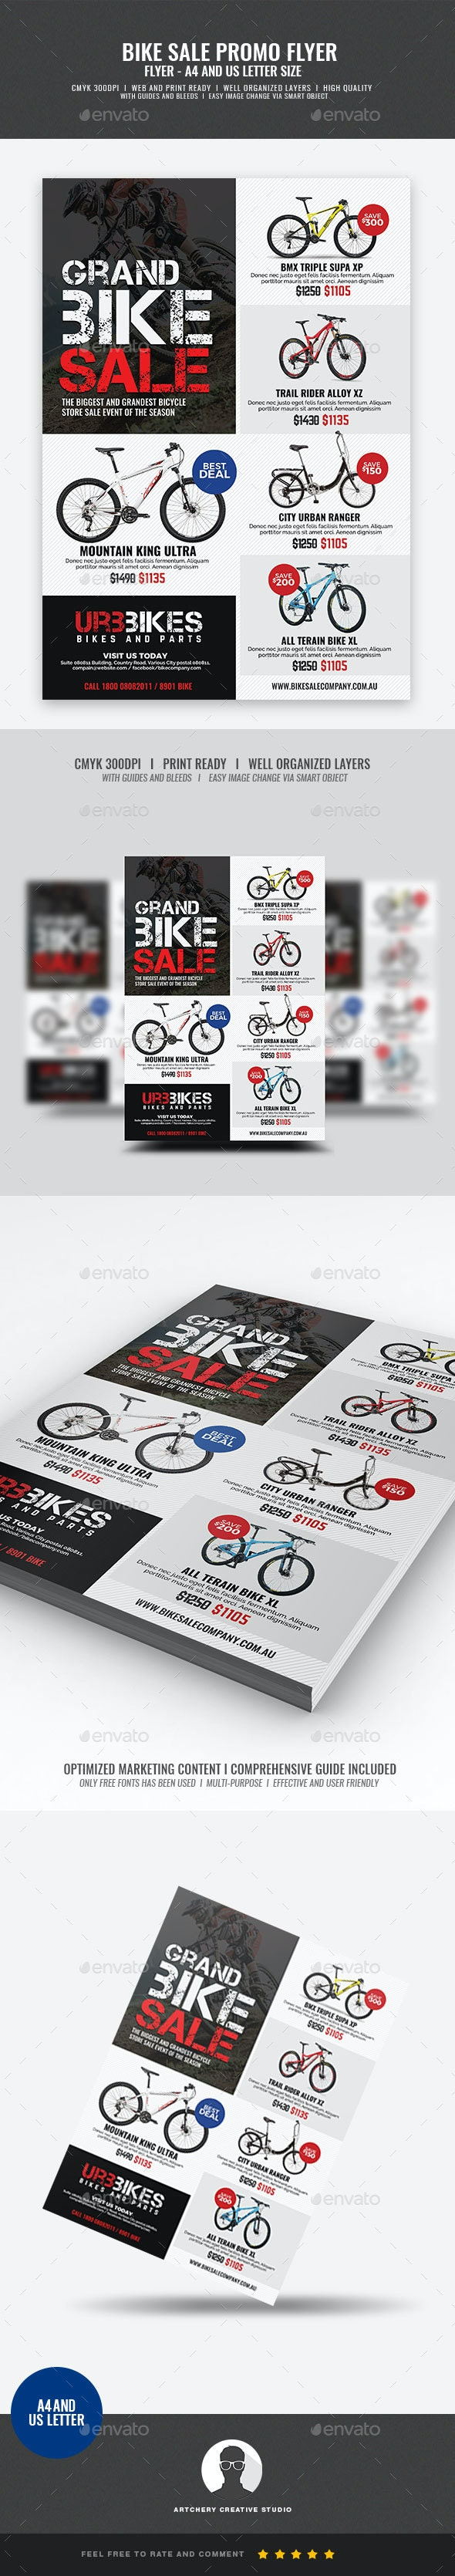 Bicycle Shop Promo Flyer - Commerce Flyers